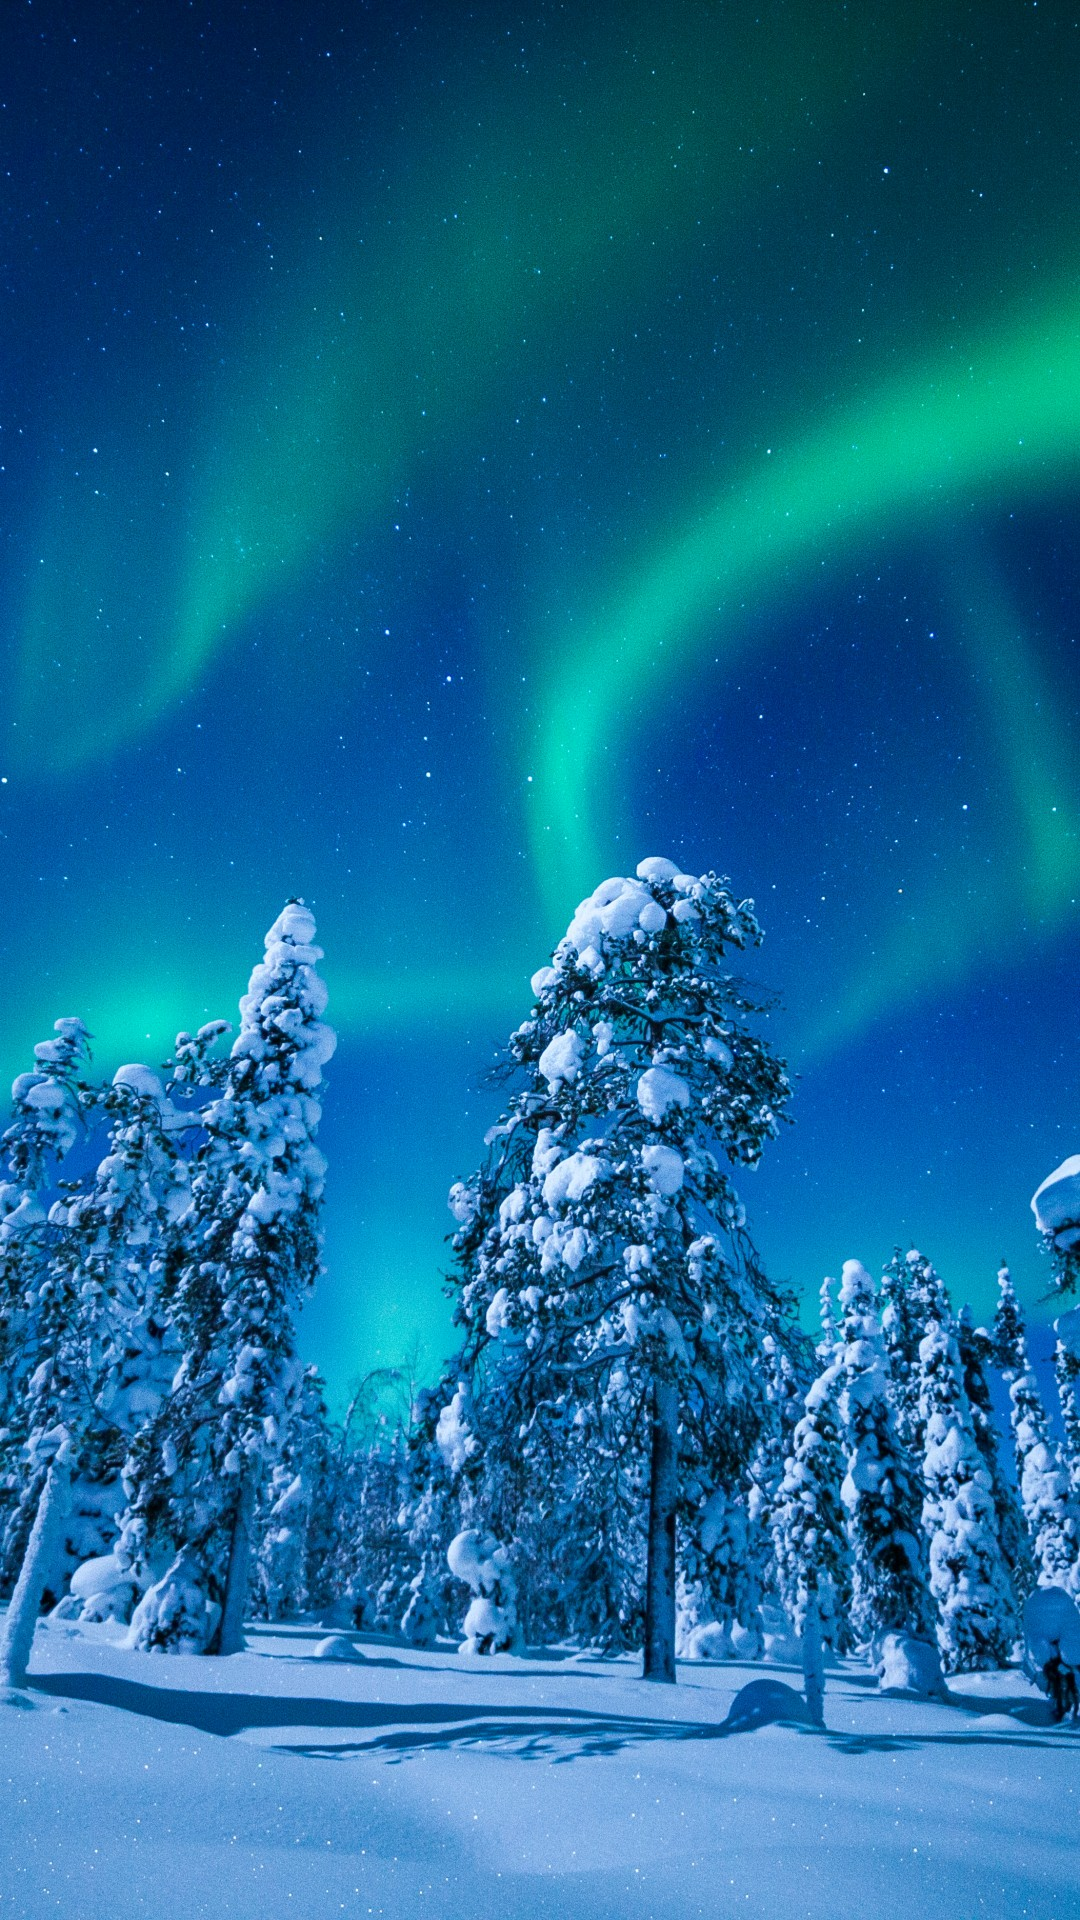 Cute Wallpapers For Girls Pc Wallpaper Lapland Finland Winter Snow Tree Night